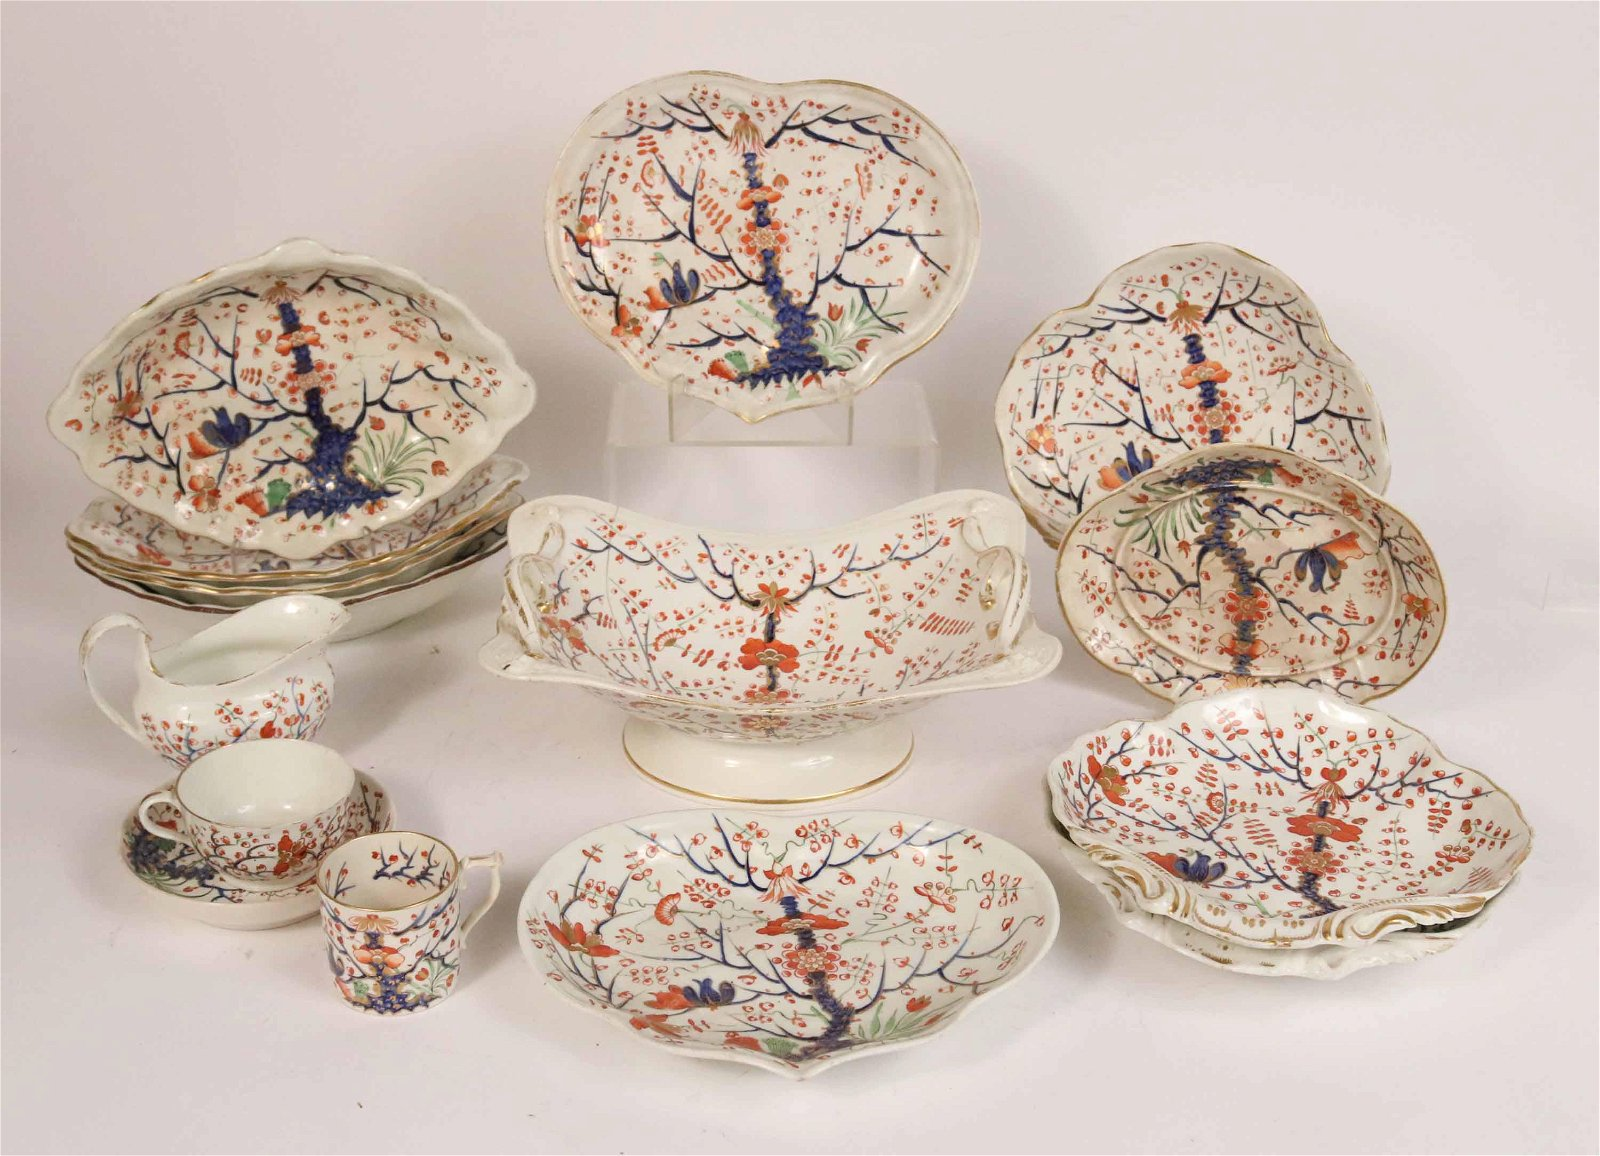 Group of Old Derby Serving Dishes